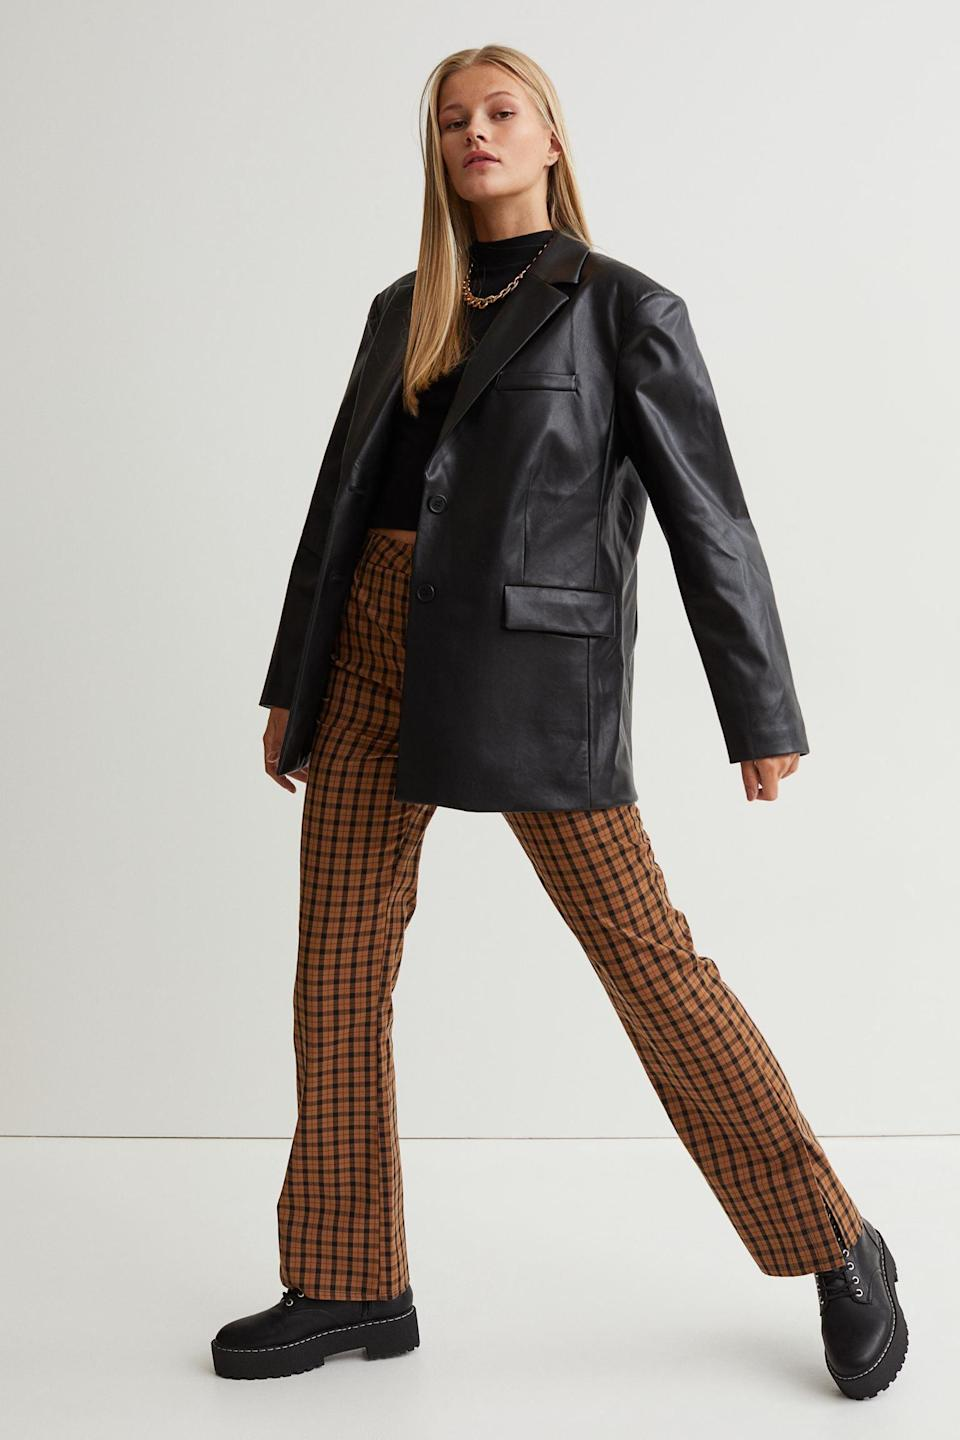 <p>This <span>Faux Leather Jacket</span> ($60) feels retro-inspired, yet it looks contemporary. It's an effortless way to give any look an edge.</p>